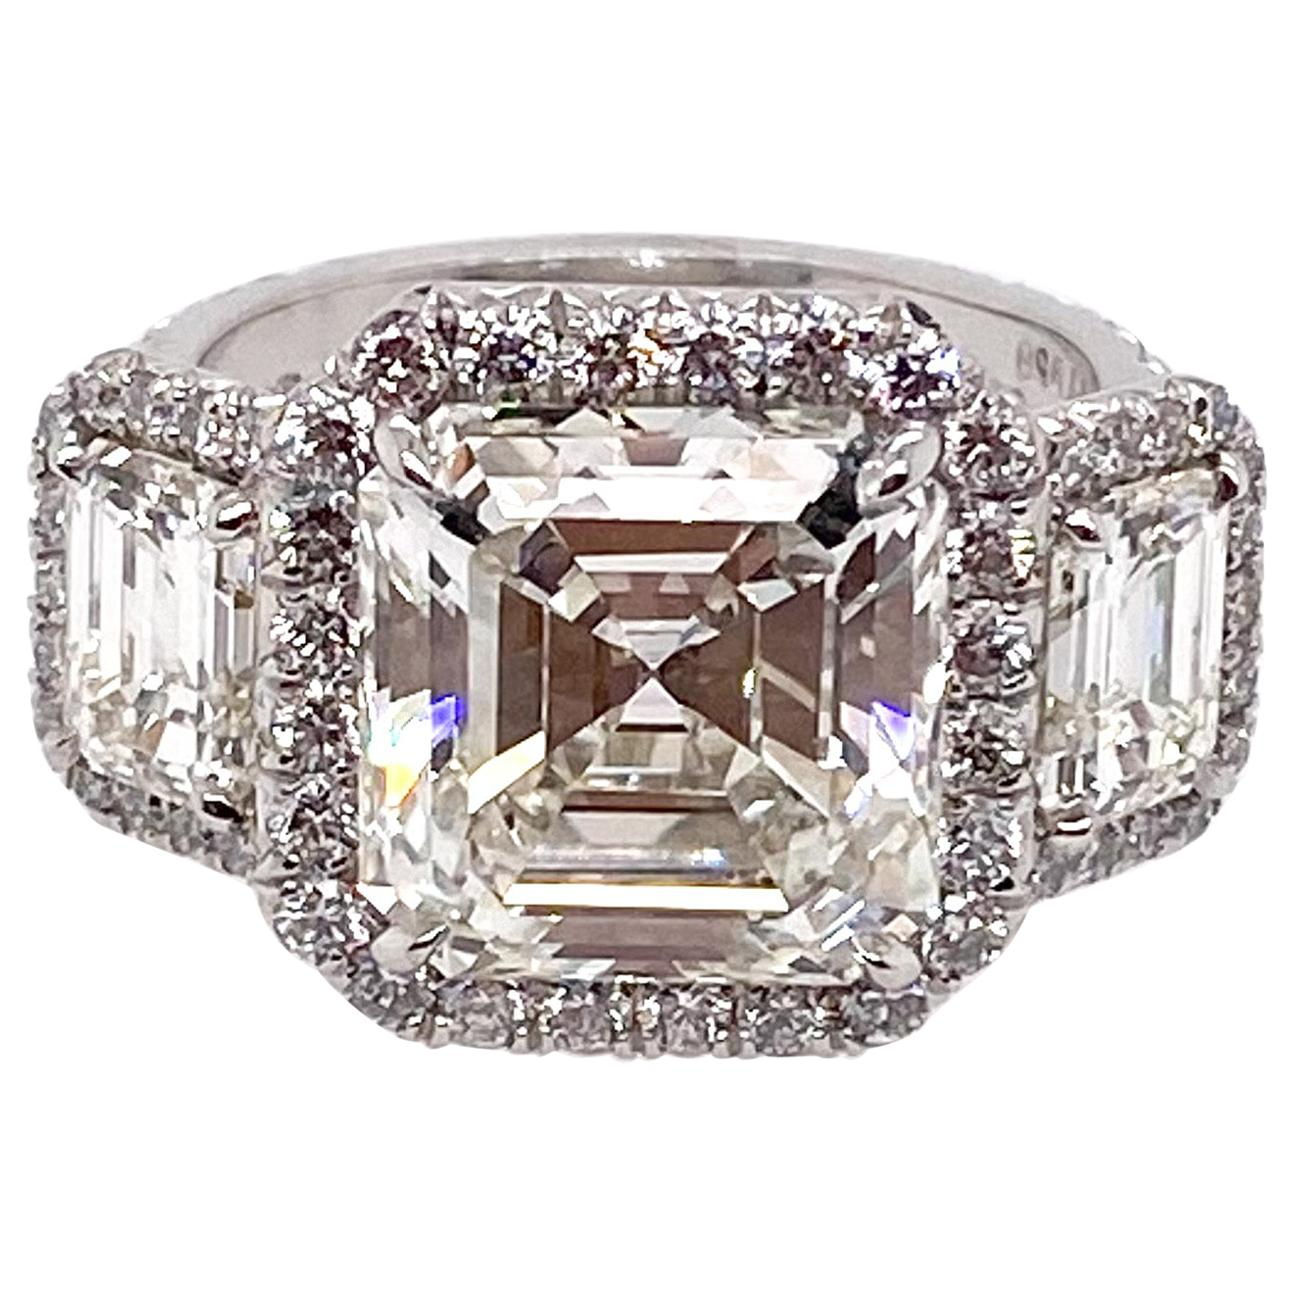 Ethonica GIA Certified Asscher Cut Diamond in Three-Stone Platinum Ring